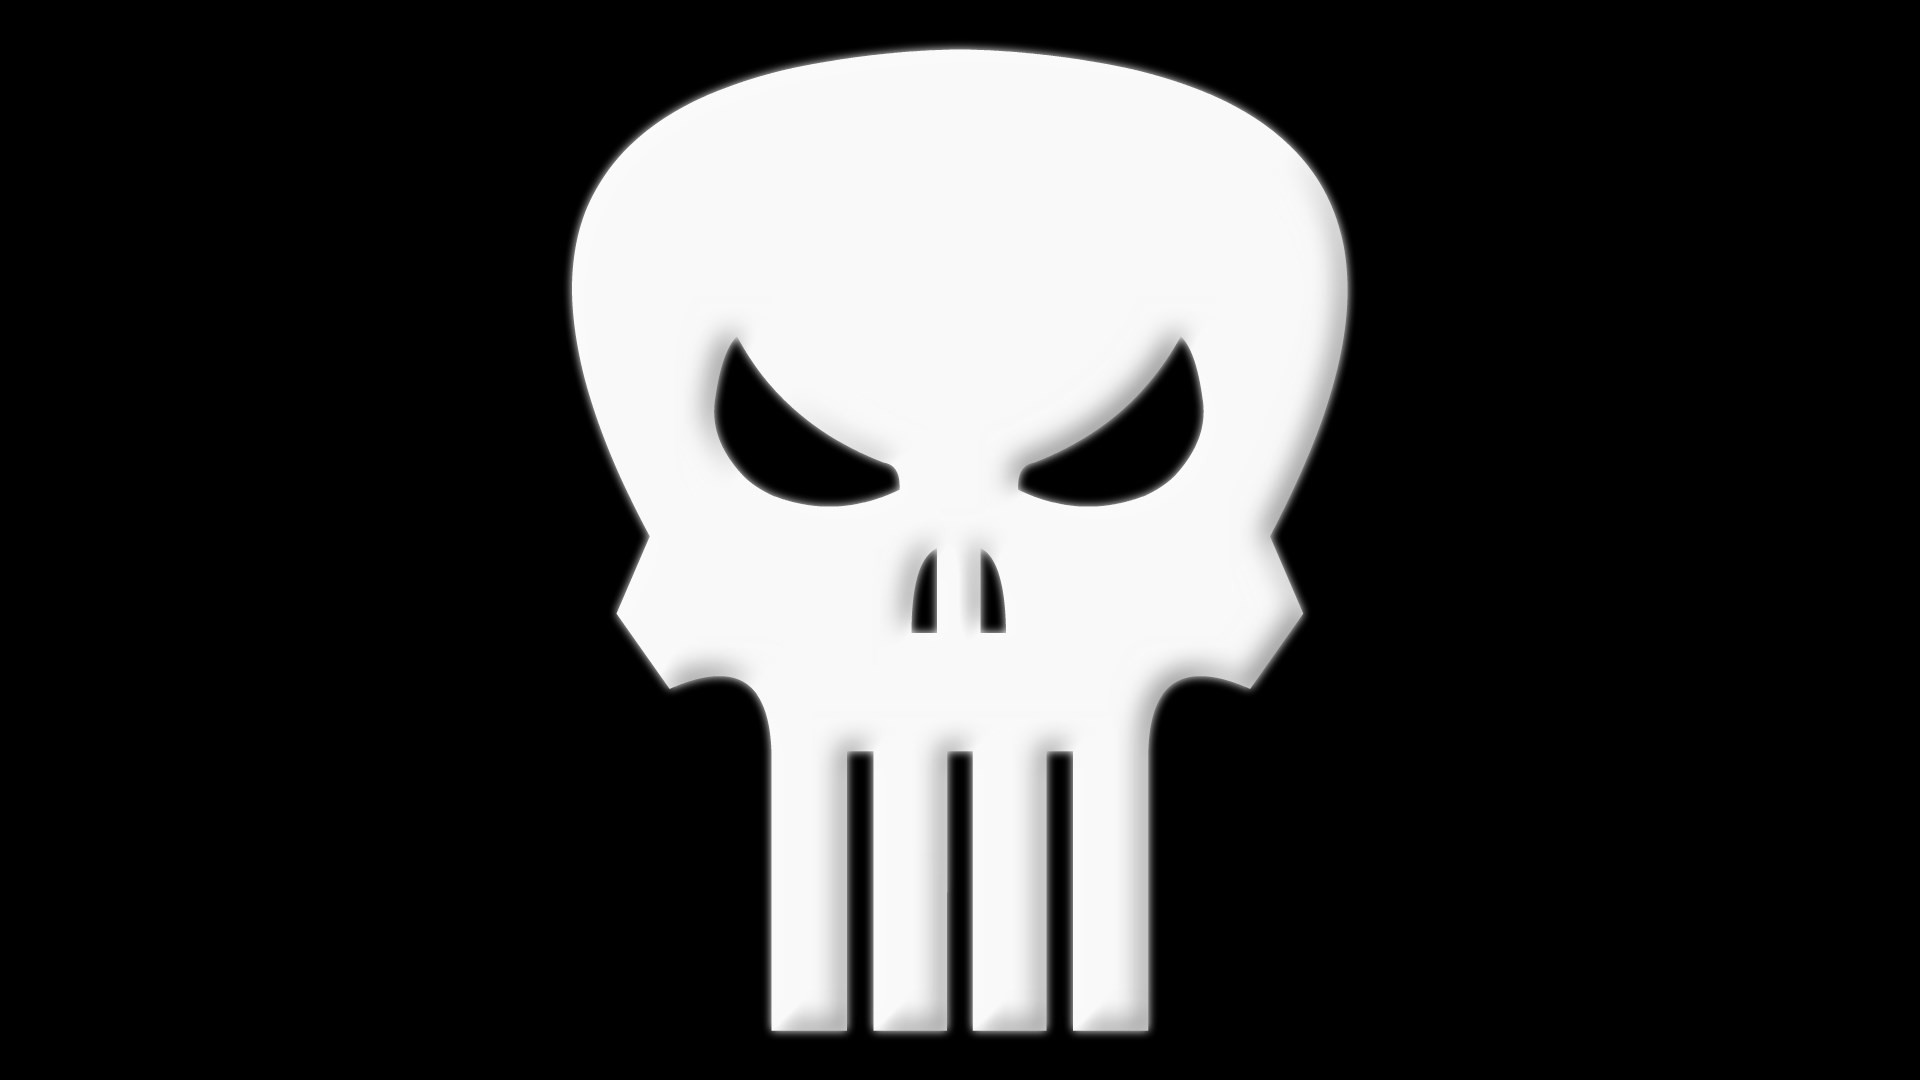 free wallpaper and screensavers for the punisher